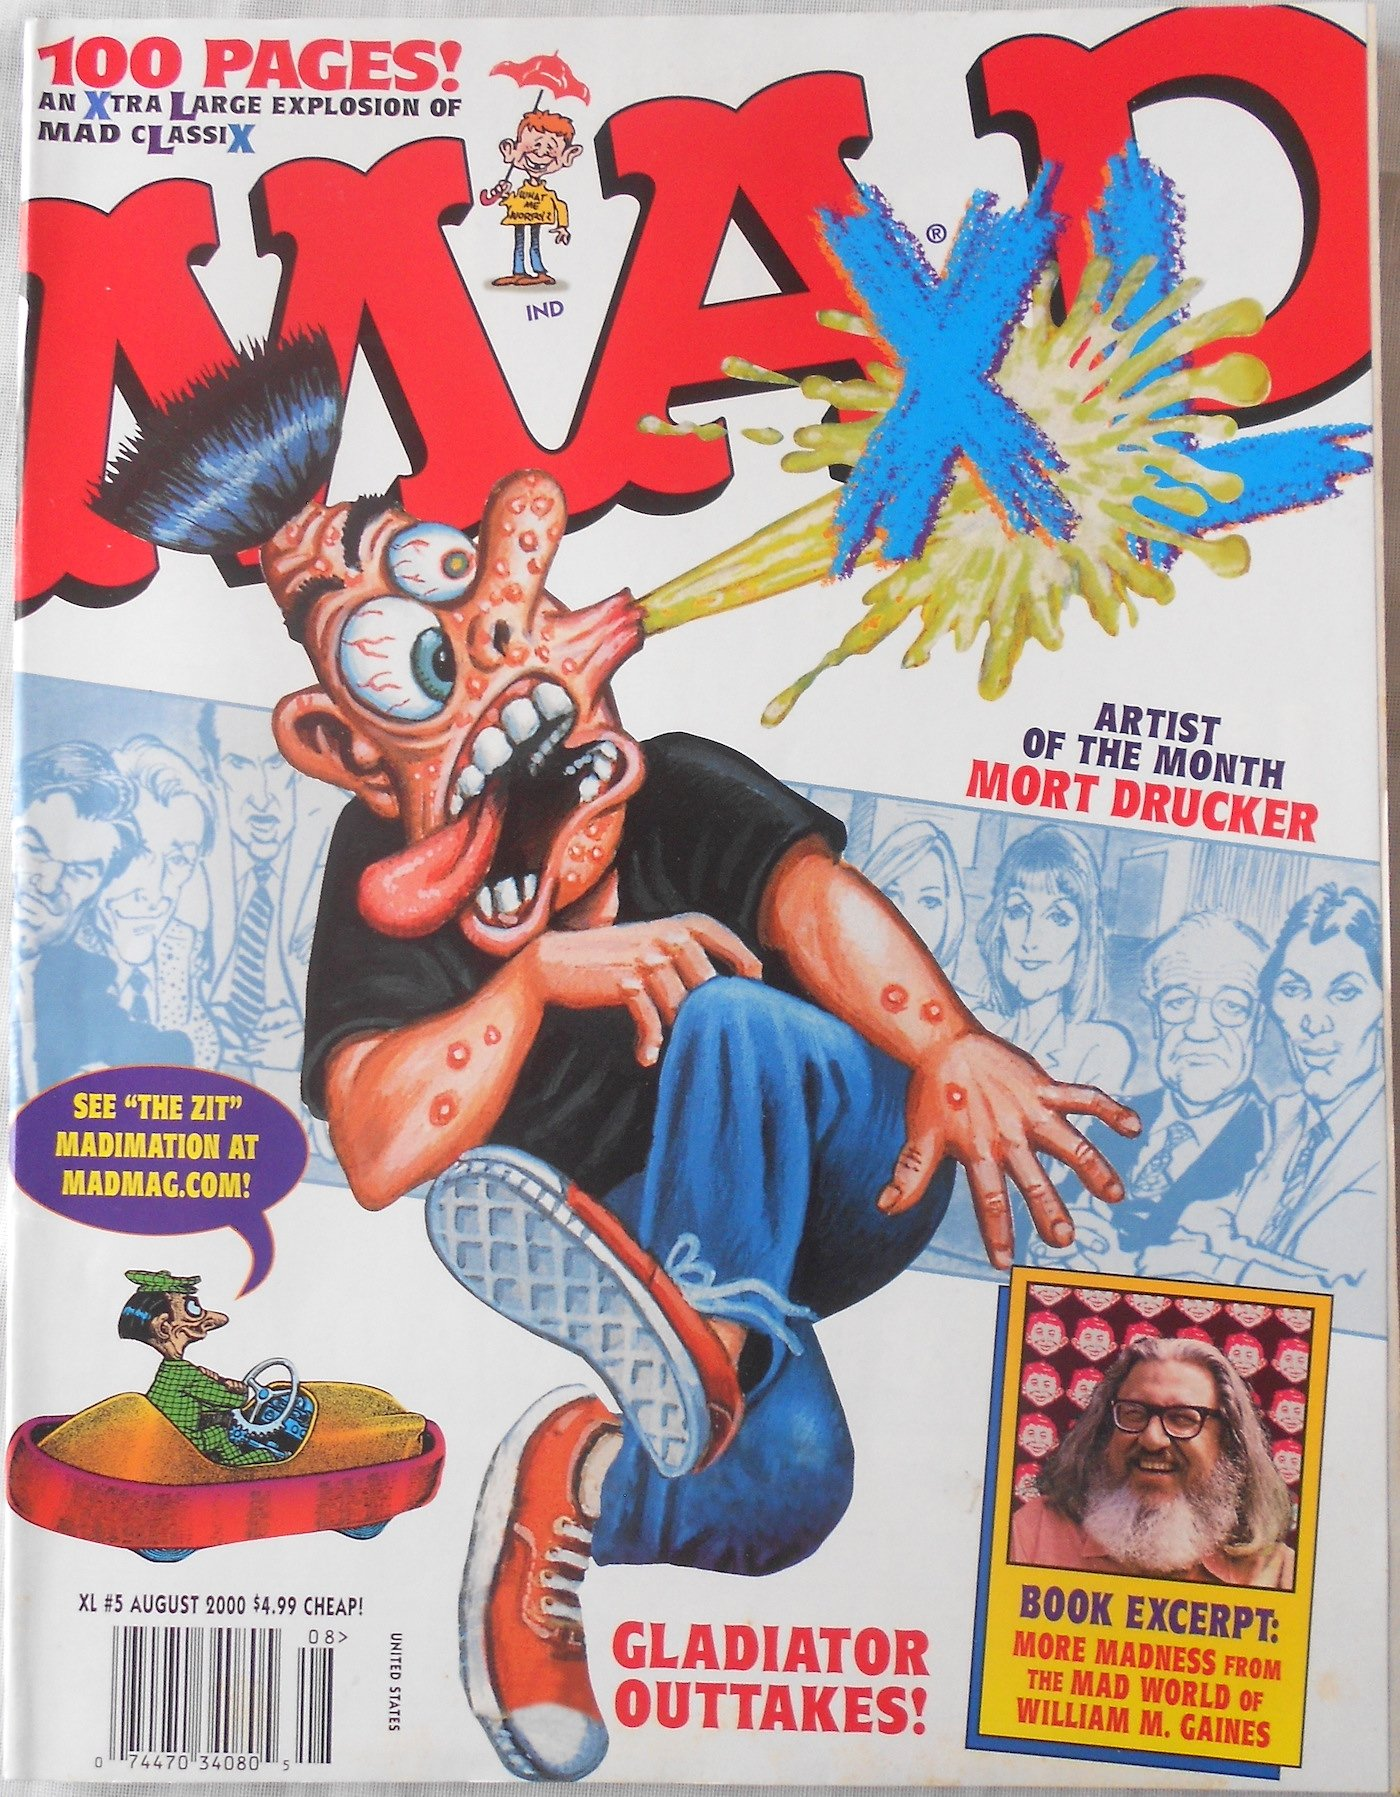 MAD XL #5 An Xtra Large Explosion of MAD Classix August 2000 ebook